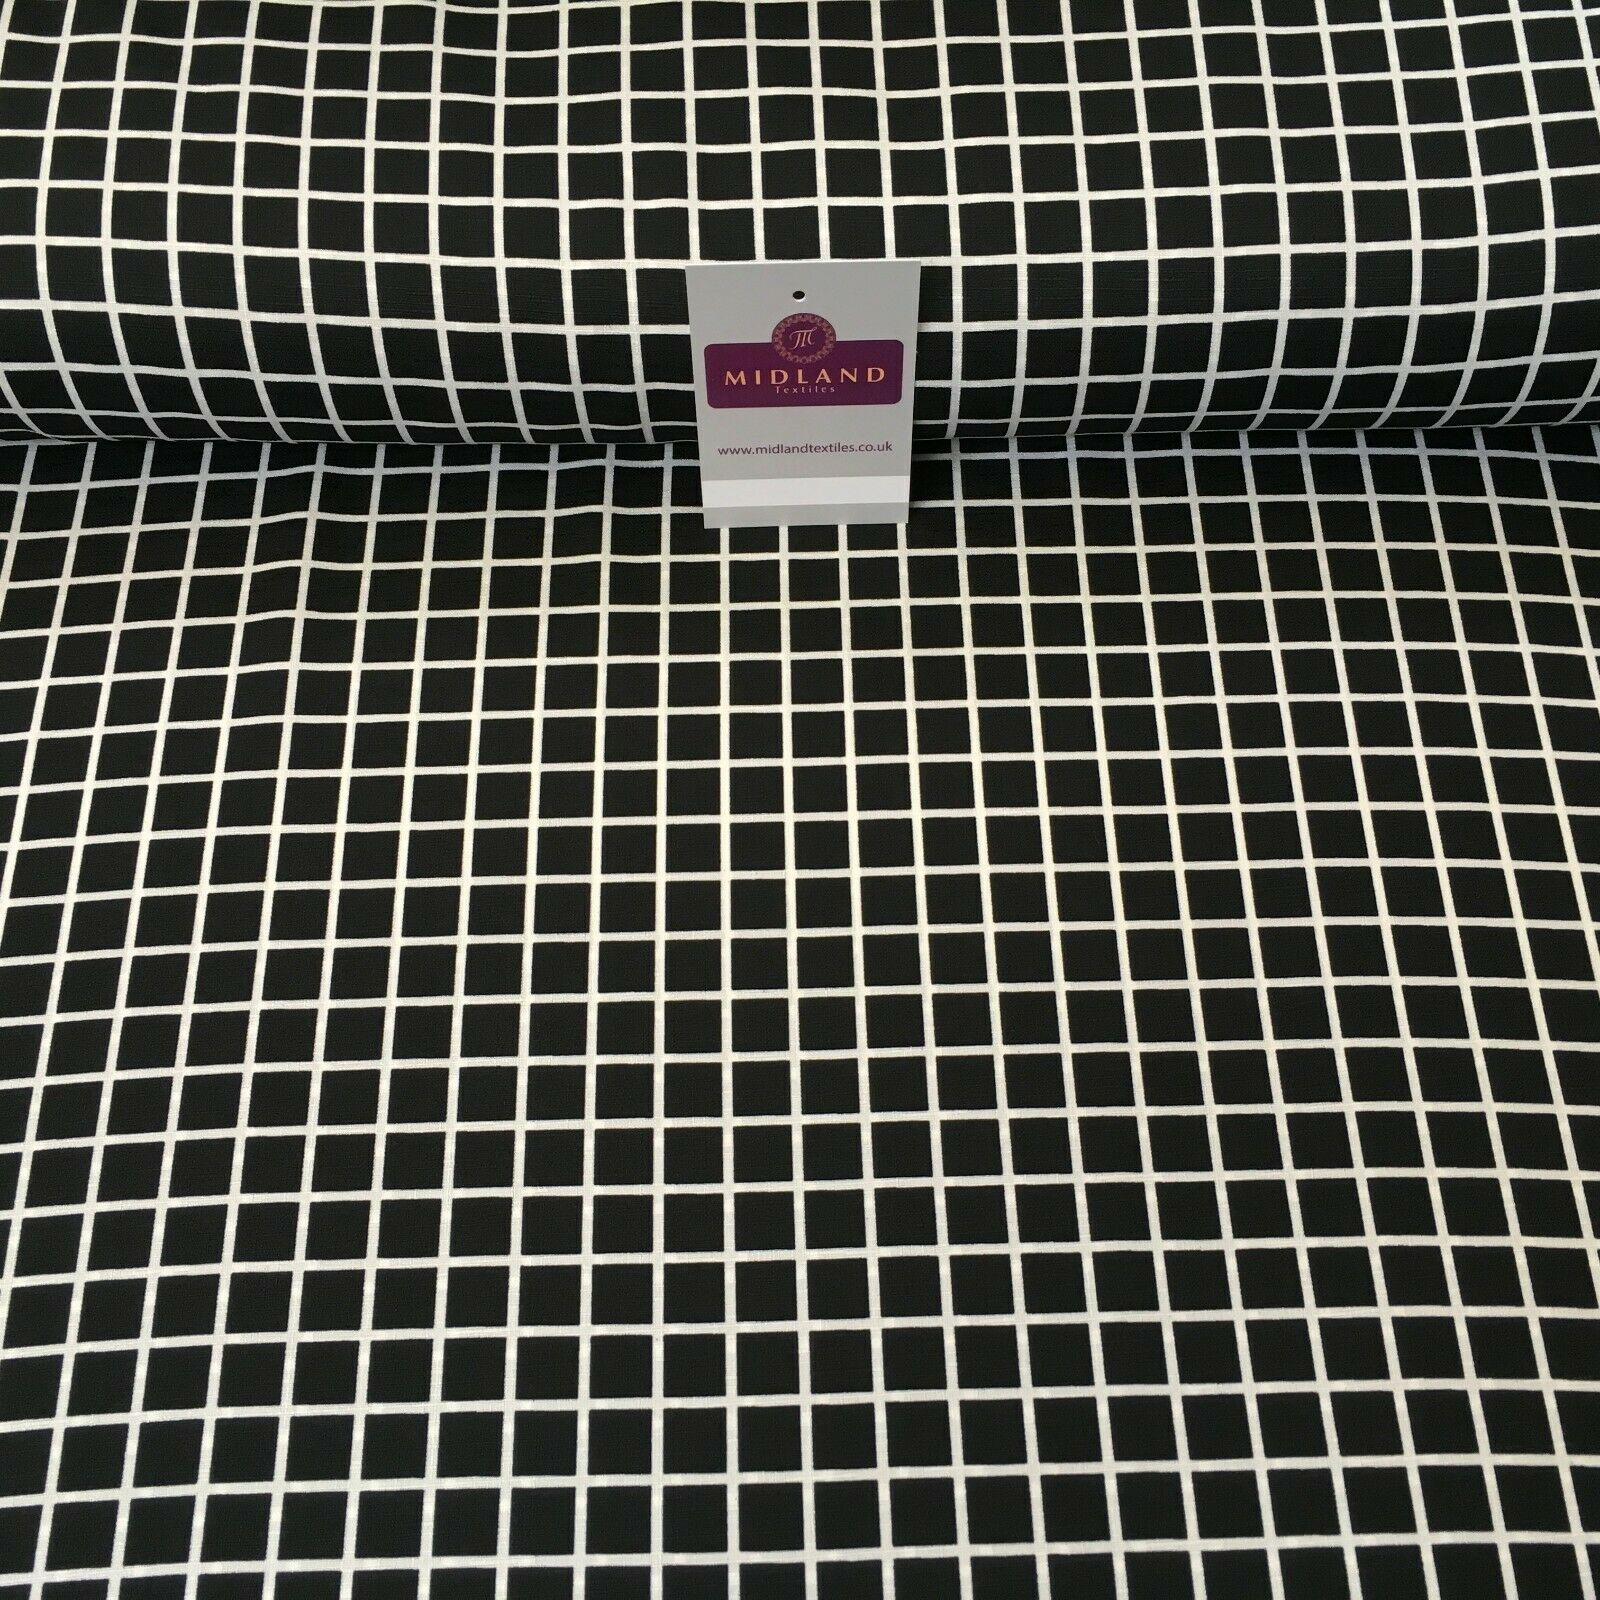 Black & White Check Linen Effect Georgette Crepe Dress Fabric 147cm MK1184-2